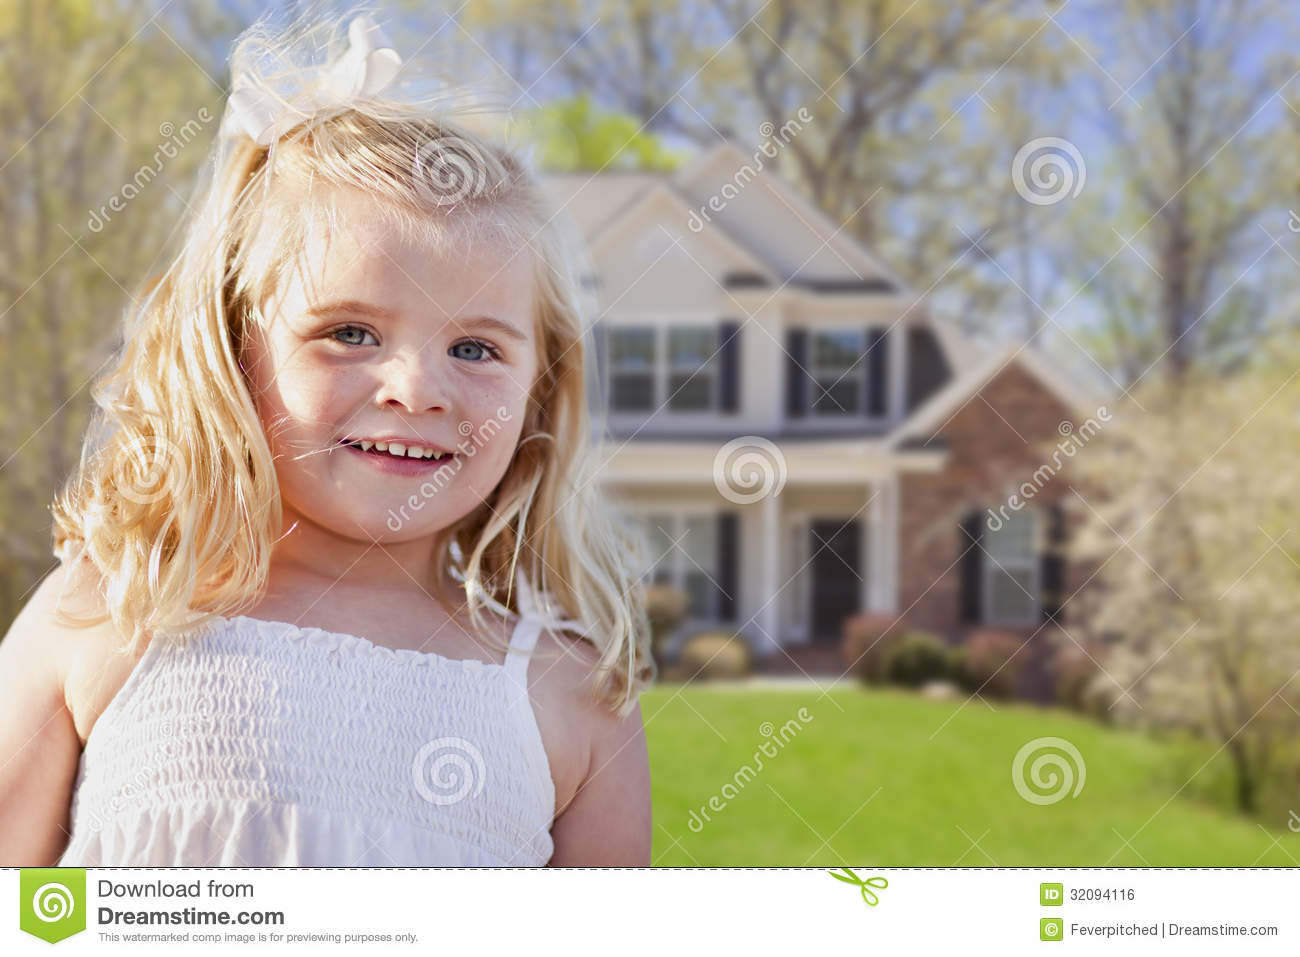 Adorable Smiling Girl Playing in Front Yard